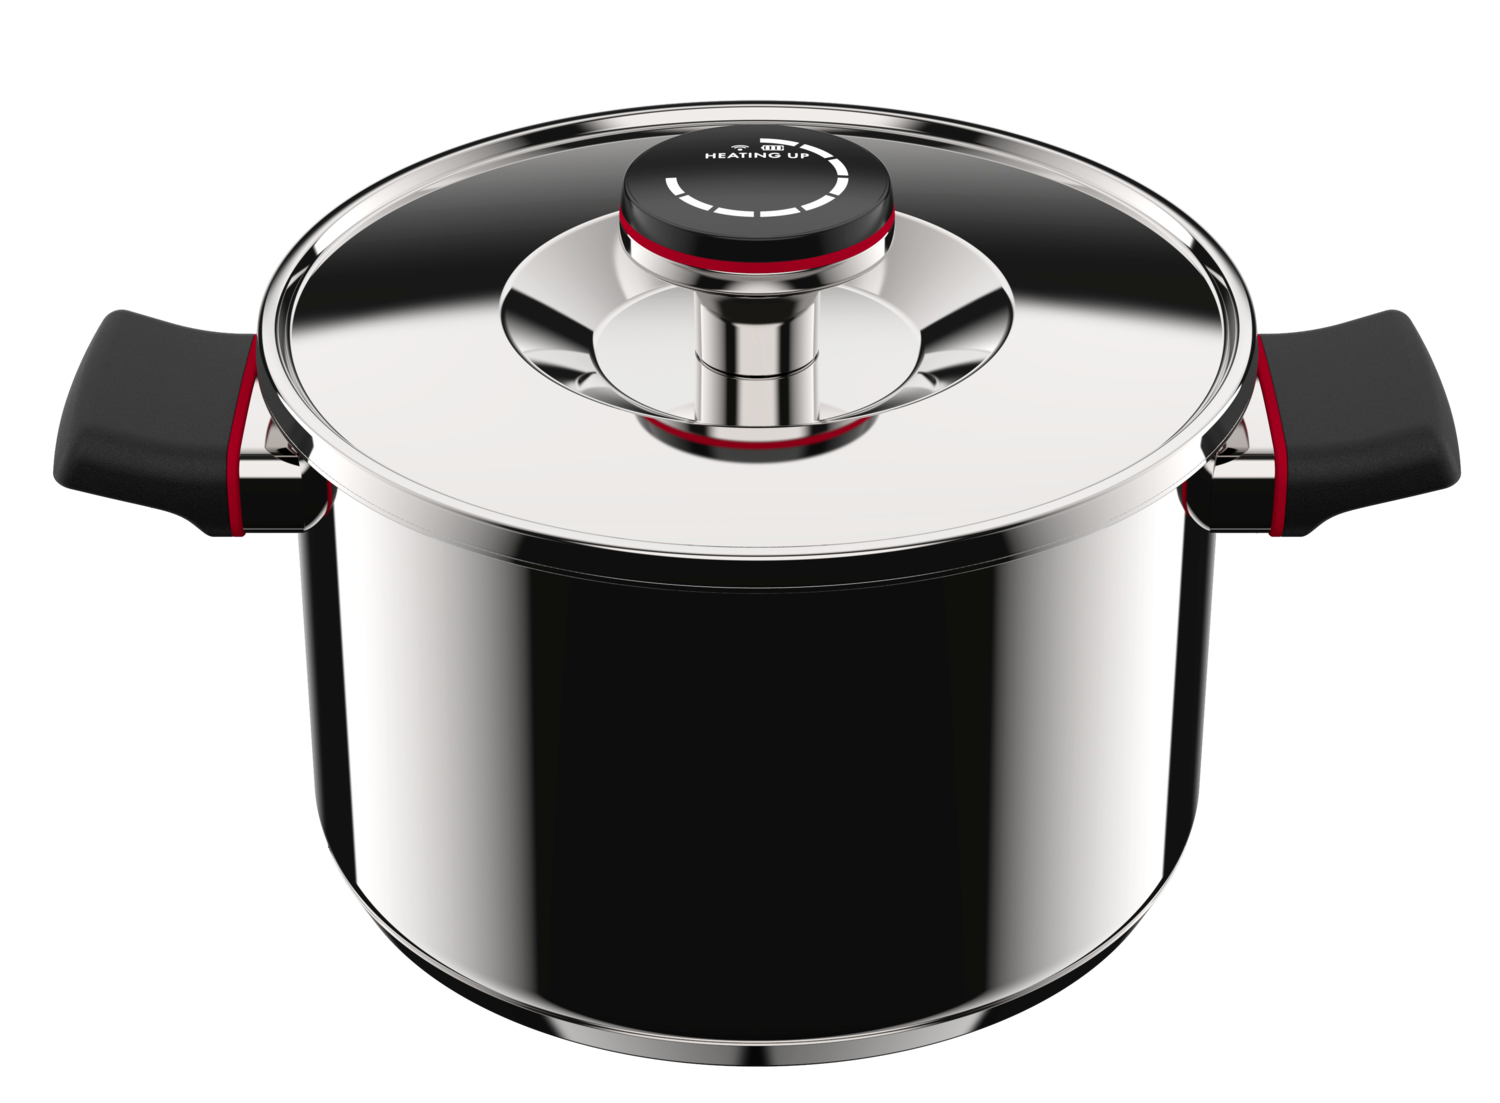 Zega Smart Cookware Review And Specification